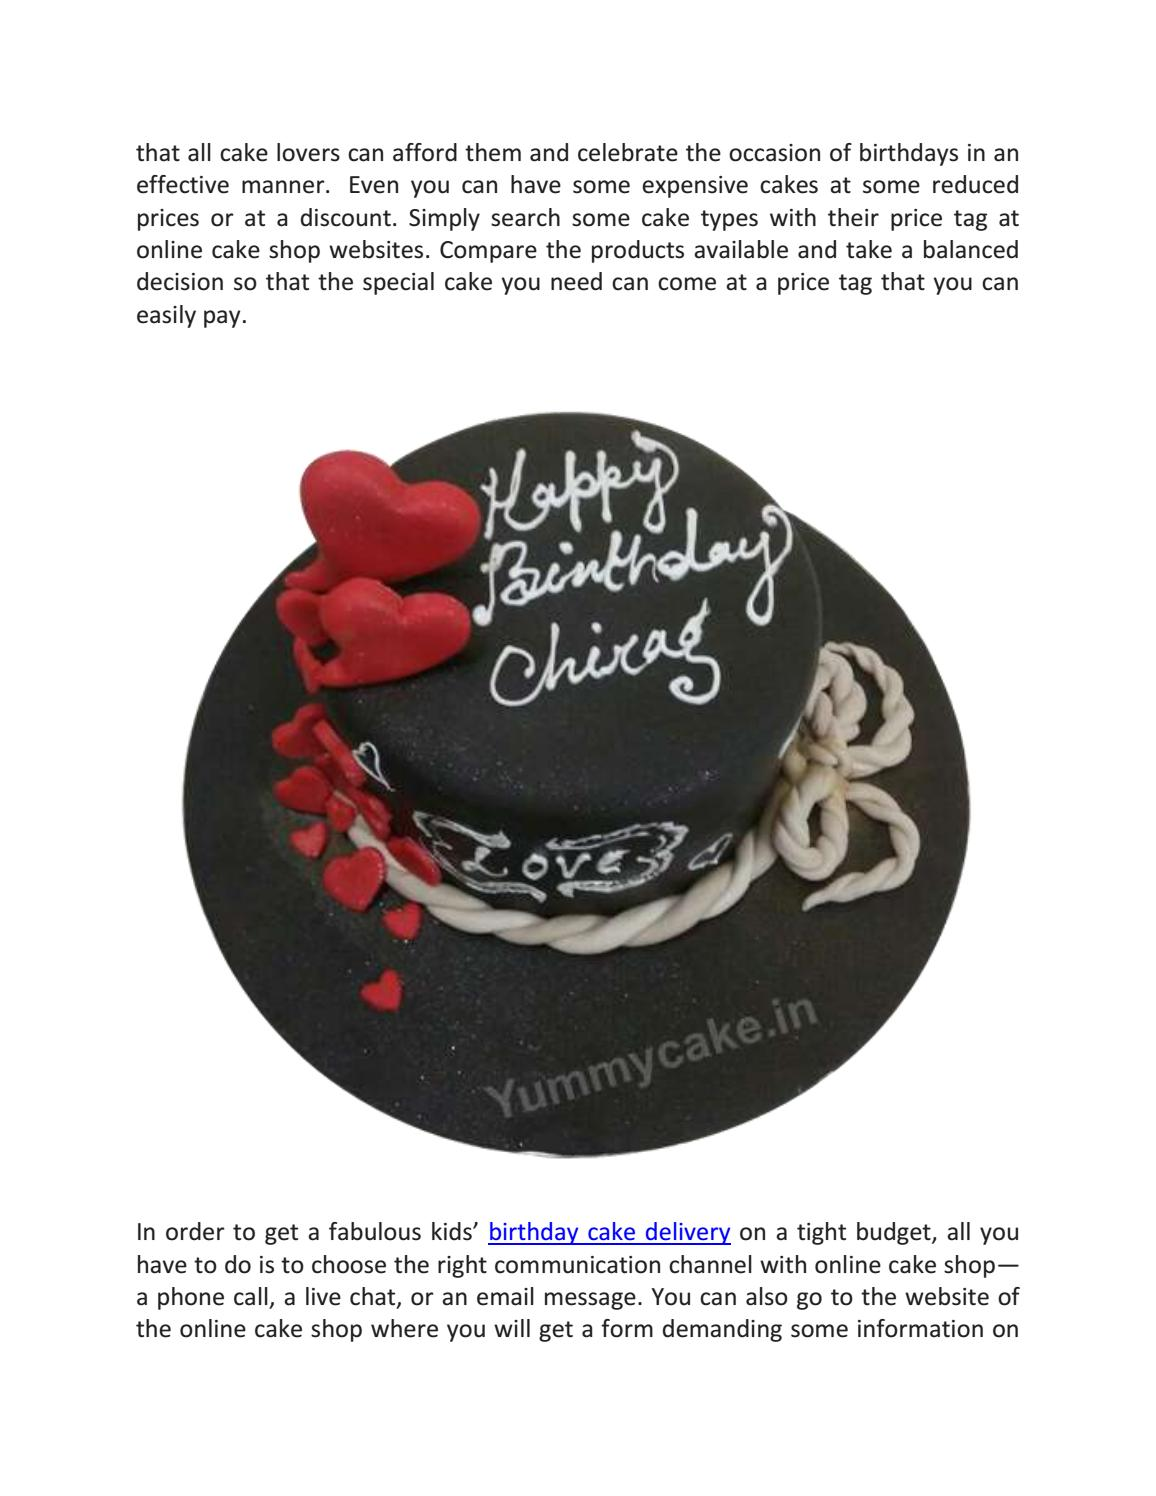 Miraculous How To Get A Fabulous Kids Birthday Cake By Yummycake Issuu Funny Birthday Cards Online Hendilapandamsfinfo